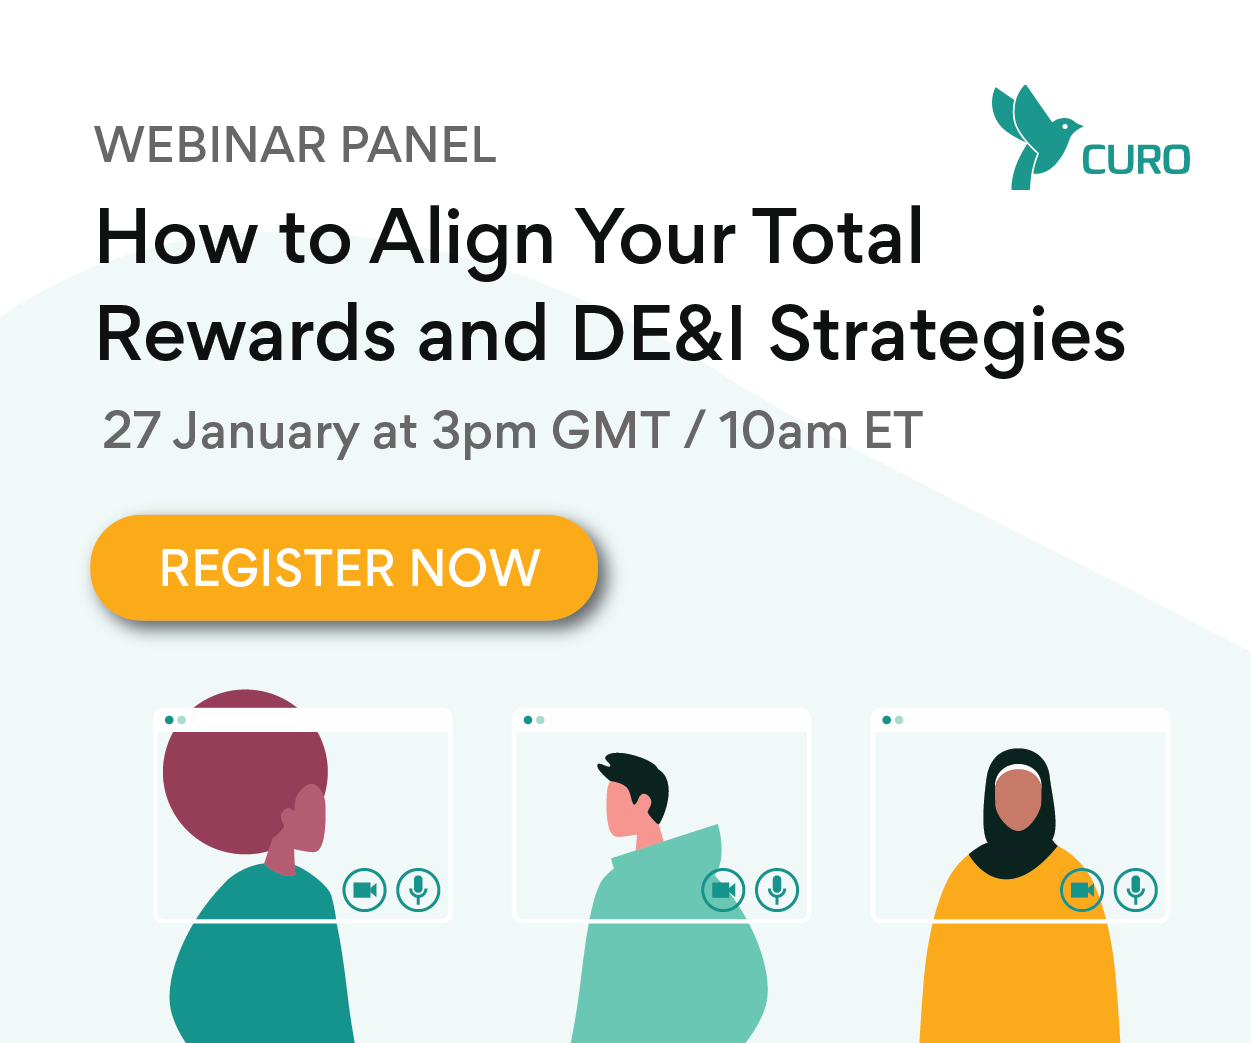 How to Align Your Total Rewards and DE&I Strategies